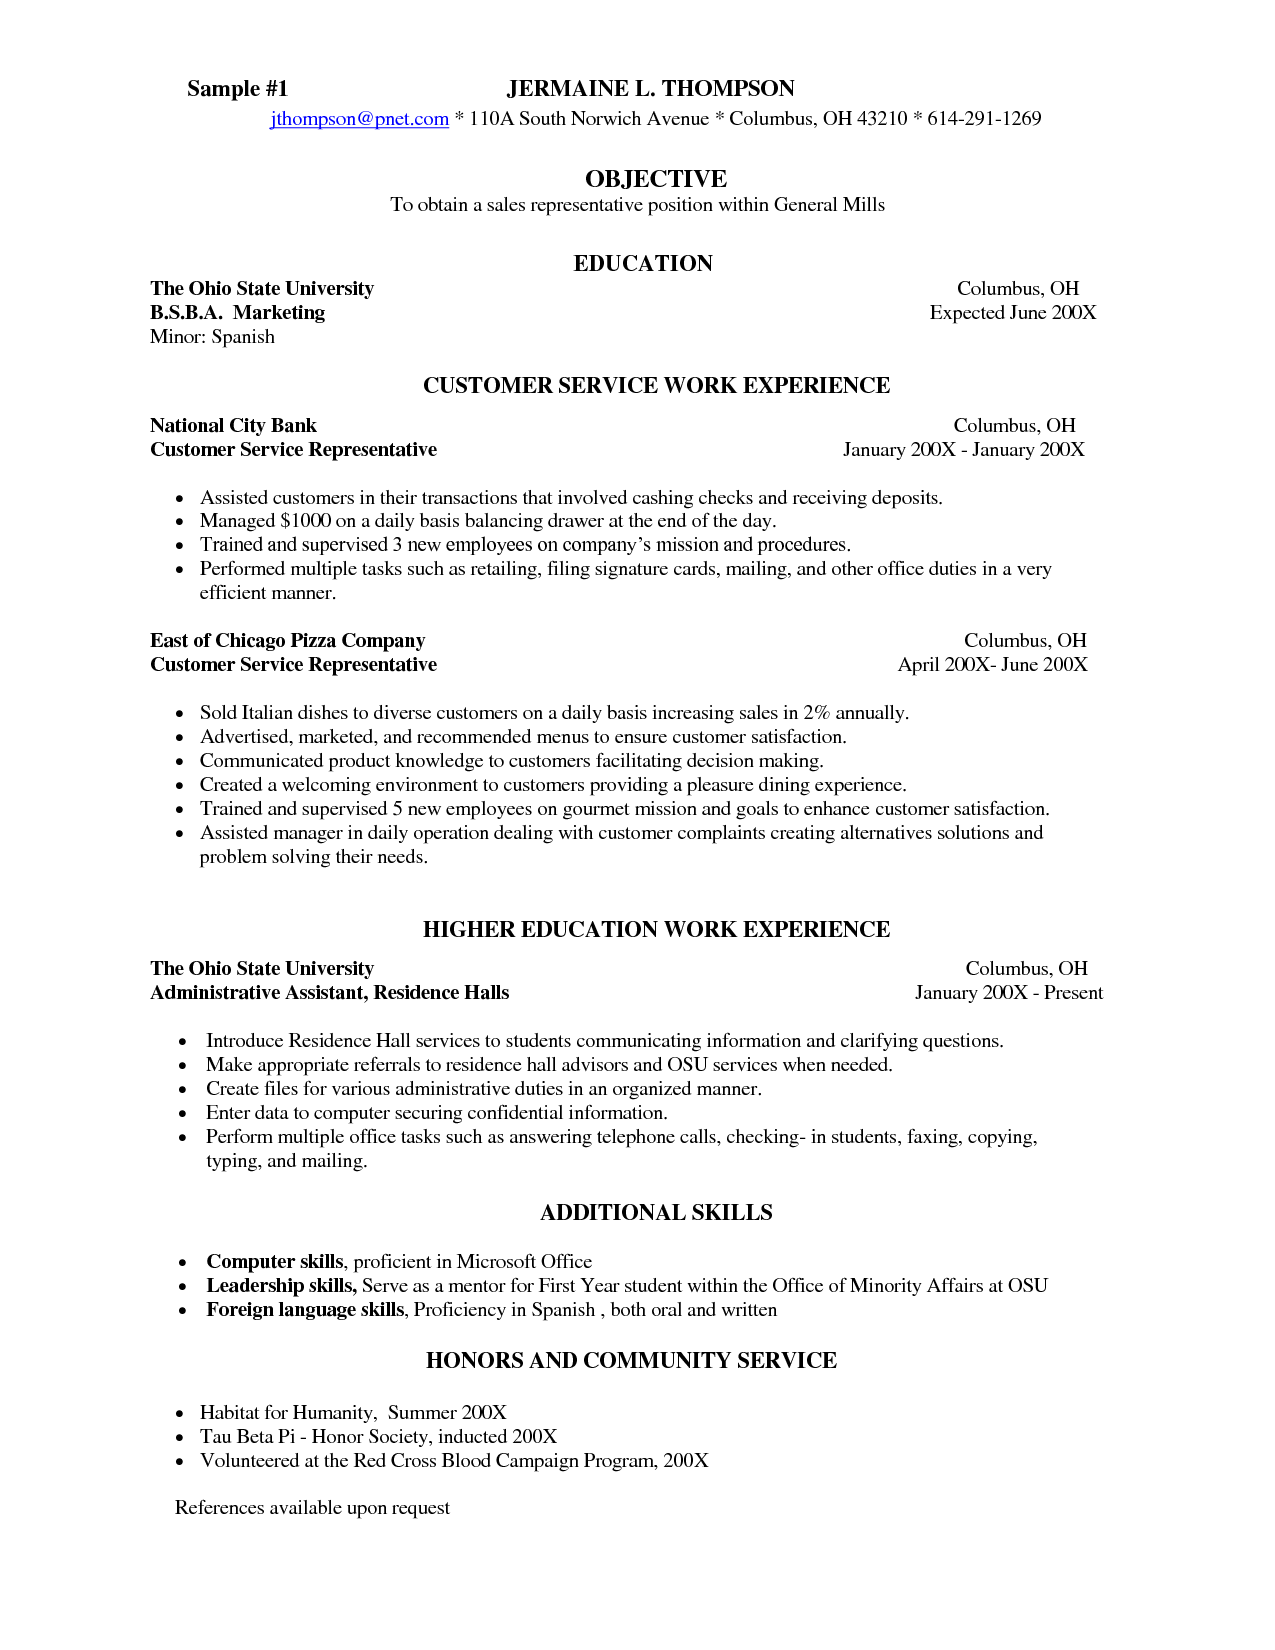 Restaurant Server Description For Resume 10 Server Resume Samples Samplebusinessresume